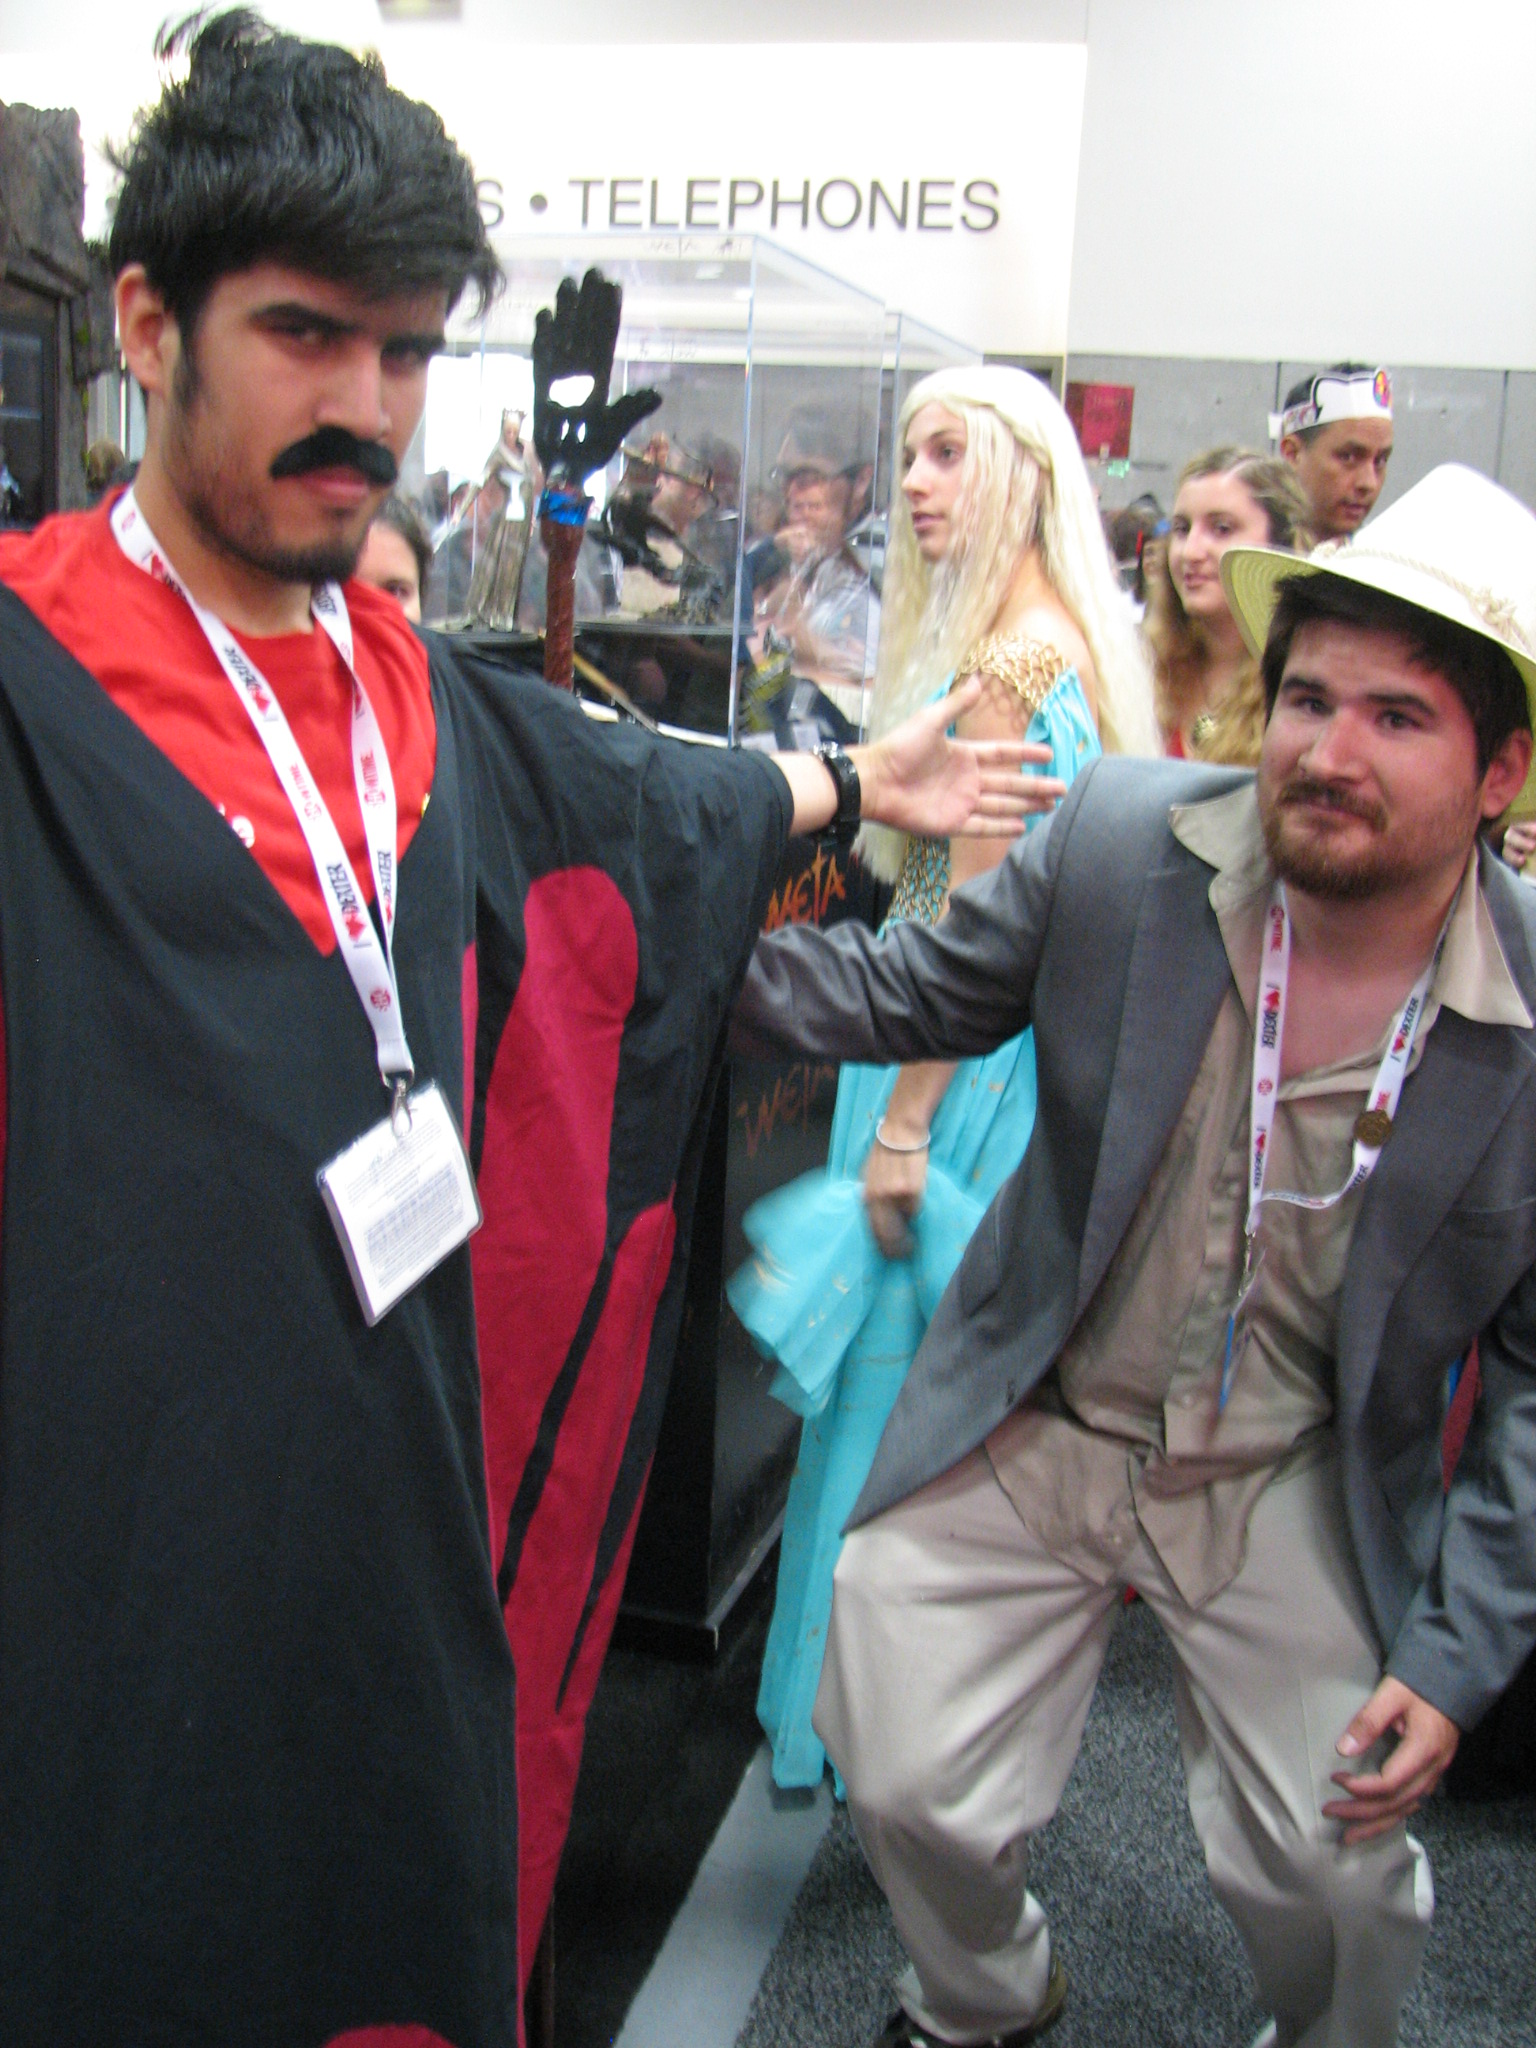 The Master and Torgo from  You know Manos the Hands of Fate  sc 1 st  Which Way to Hollywood & Comic Con Day 3 pt. 1: the Magical Mystery Tour u2013 Which Way to ...